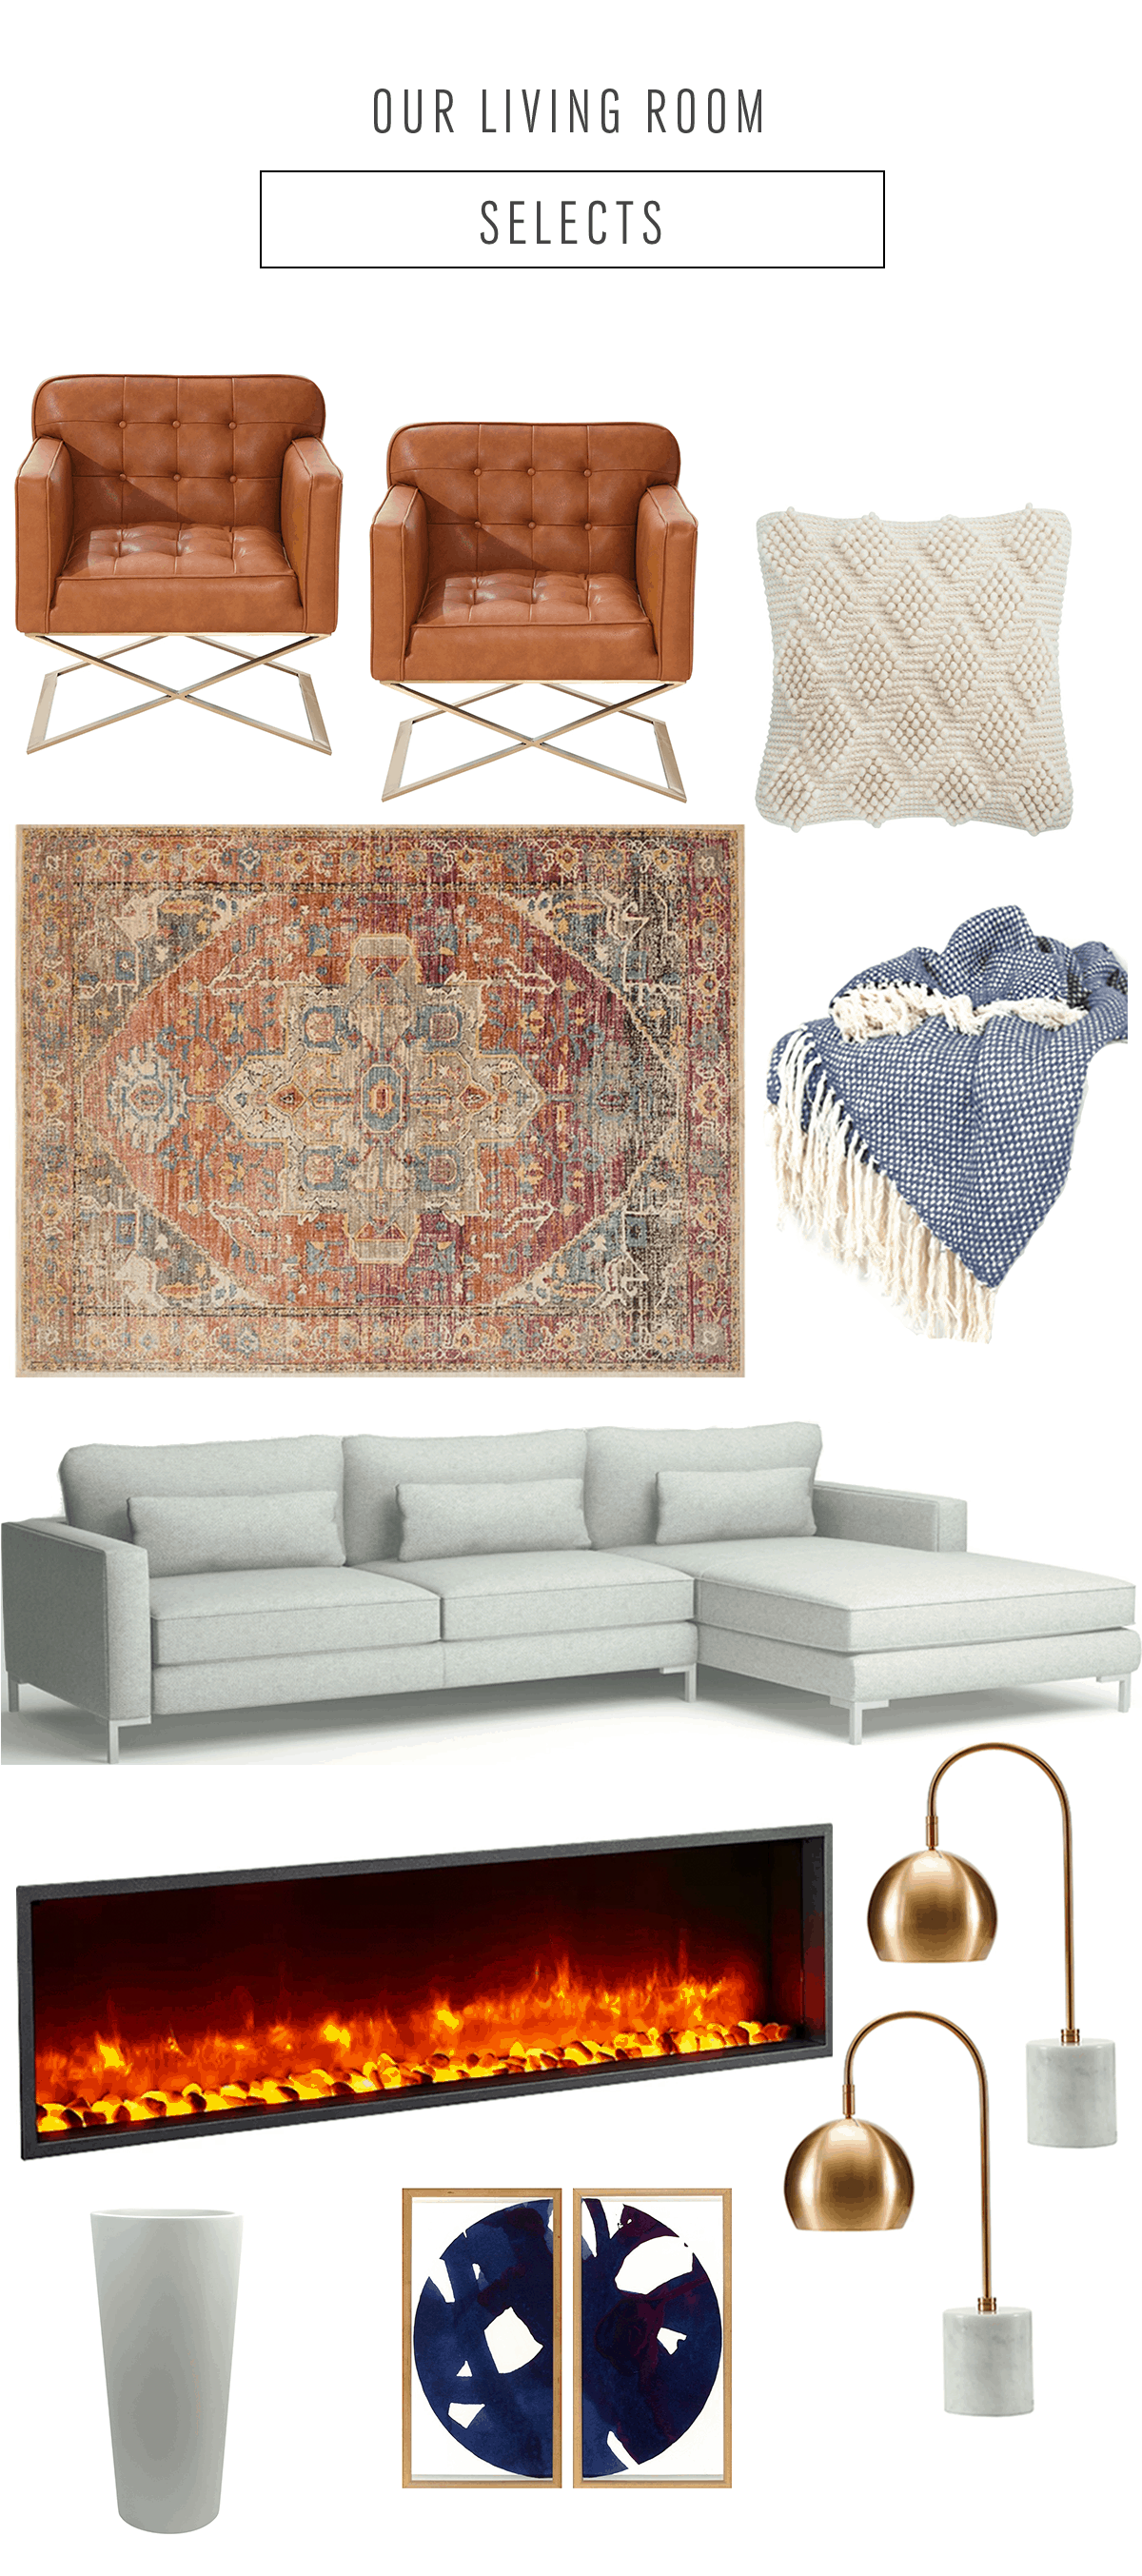 #SUGARANDCLOTHCASA: Our Living Room Design Plan by top Houston lifestyle blogger Ashley Rose of Sugar and Cloth